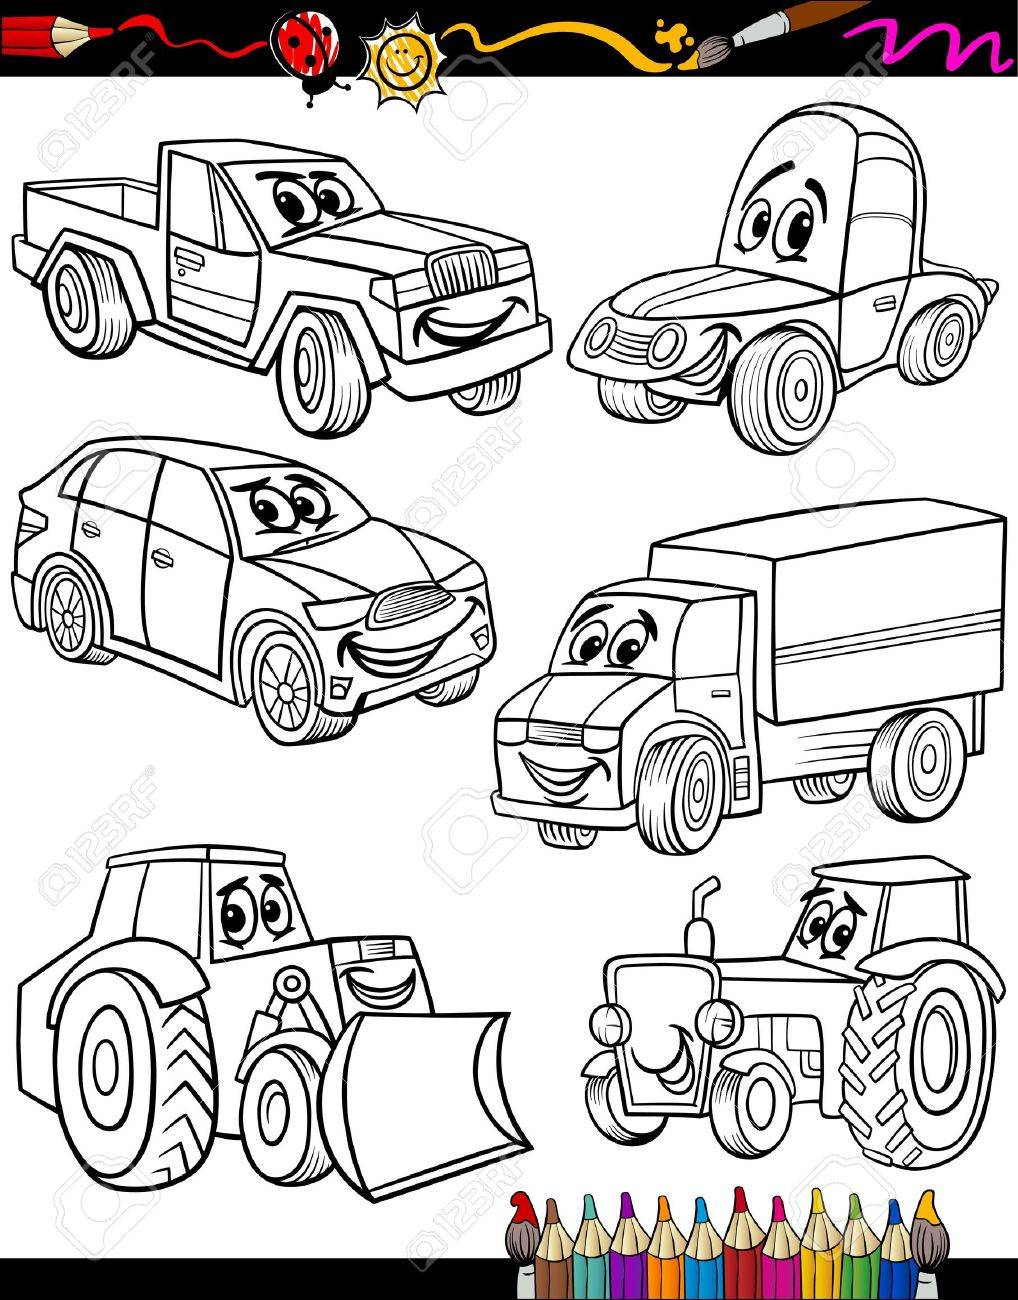 Coloring Book Or Page Cartoon Illustration Of Black And White Cars Trucks Vehicles Machines